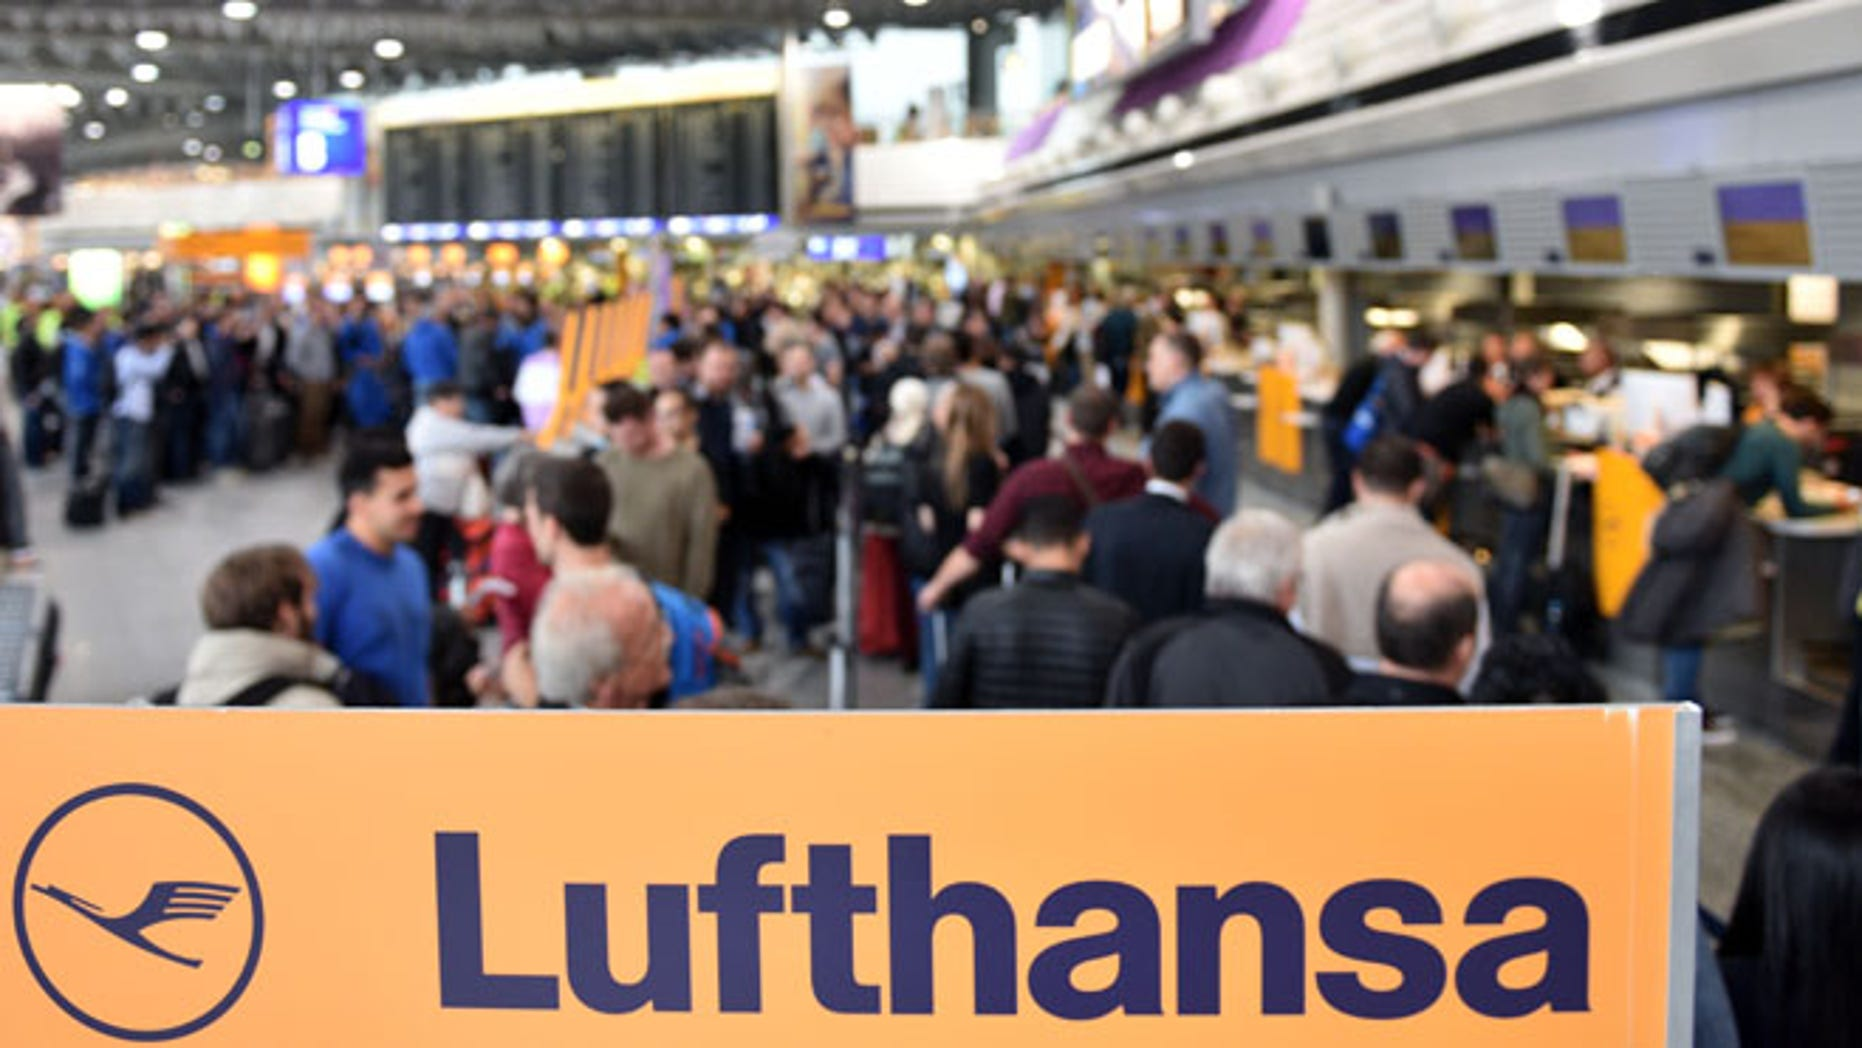 FRANKFURT AM MAIN, GERMANY - NOVEMBER 06:  Passengers of the German airline Lufthansa wait at terminal 1 at Frankfurt Airport during an strike over salaries at Frankfurt and Dusseldorf airports on November 6, 2015 in Frankfurt, Germany. The UFO labor union, which represents the crews, has resorted to the strike following failed negotiations with Lufthansa and is leaving the option open for further strikes in coming days.  (Photo by Thomas Lohnes/Getty Images)